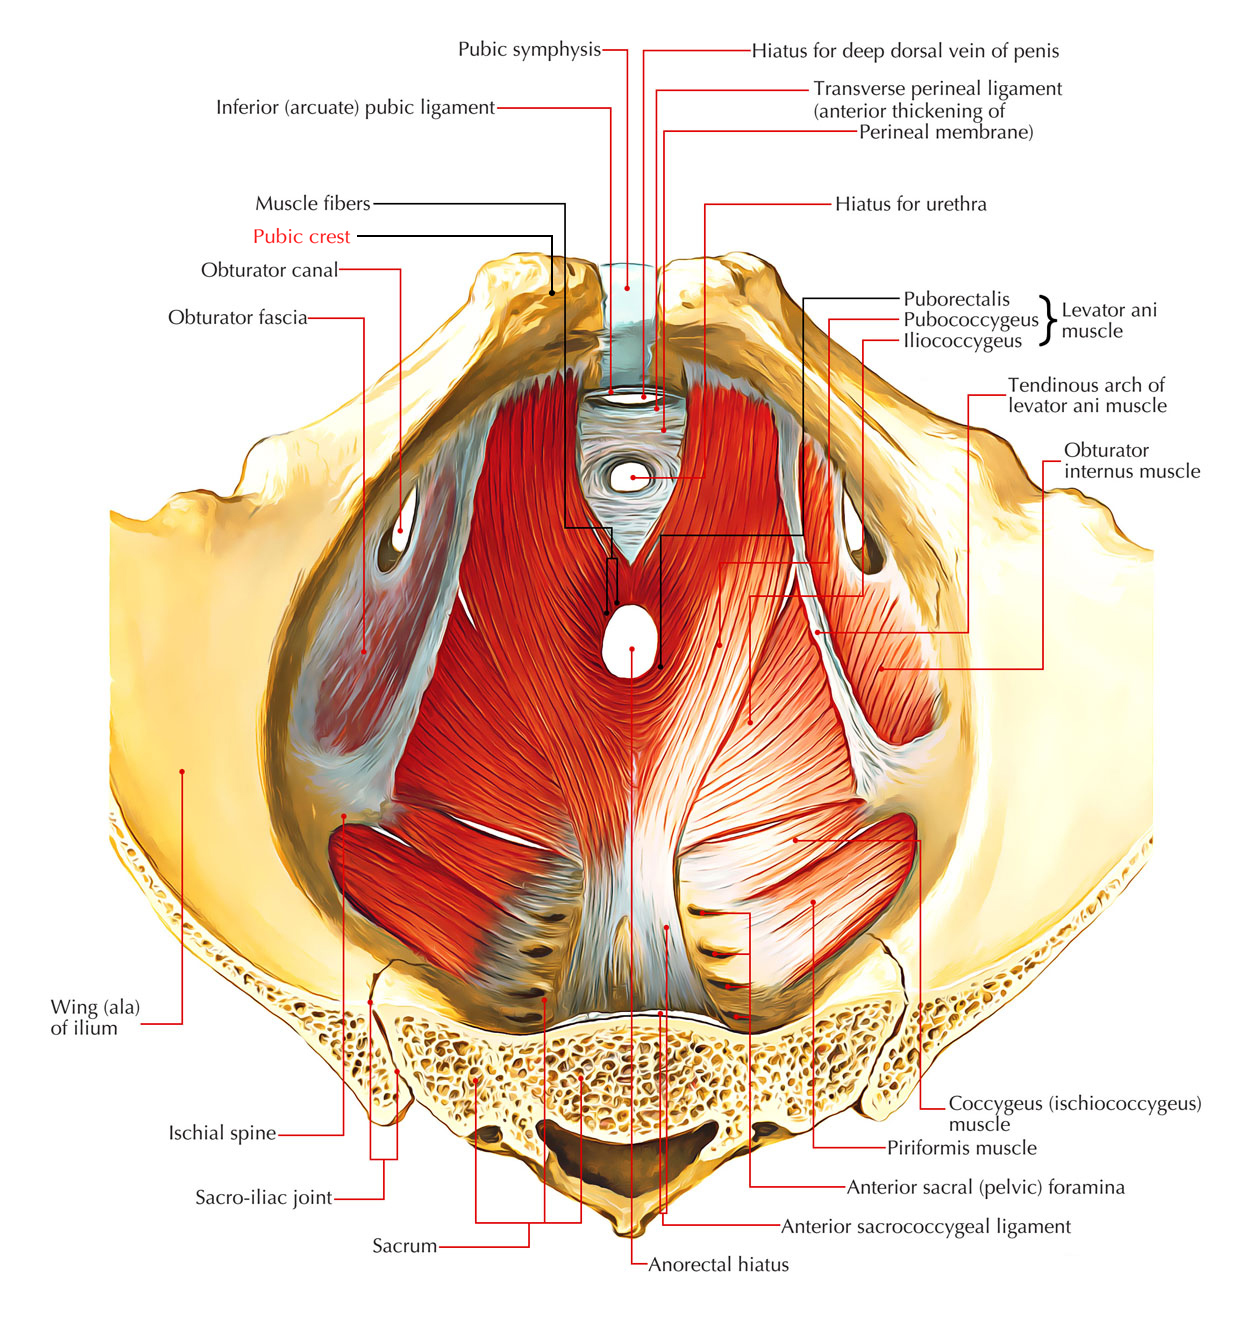 hight resolution of pubic crest